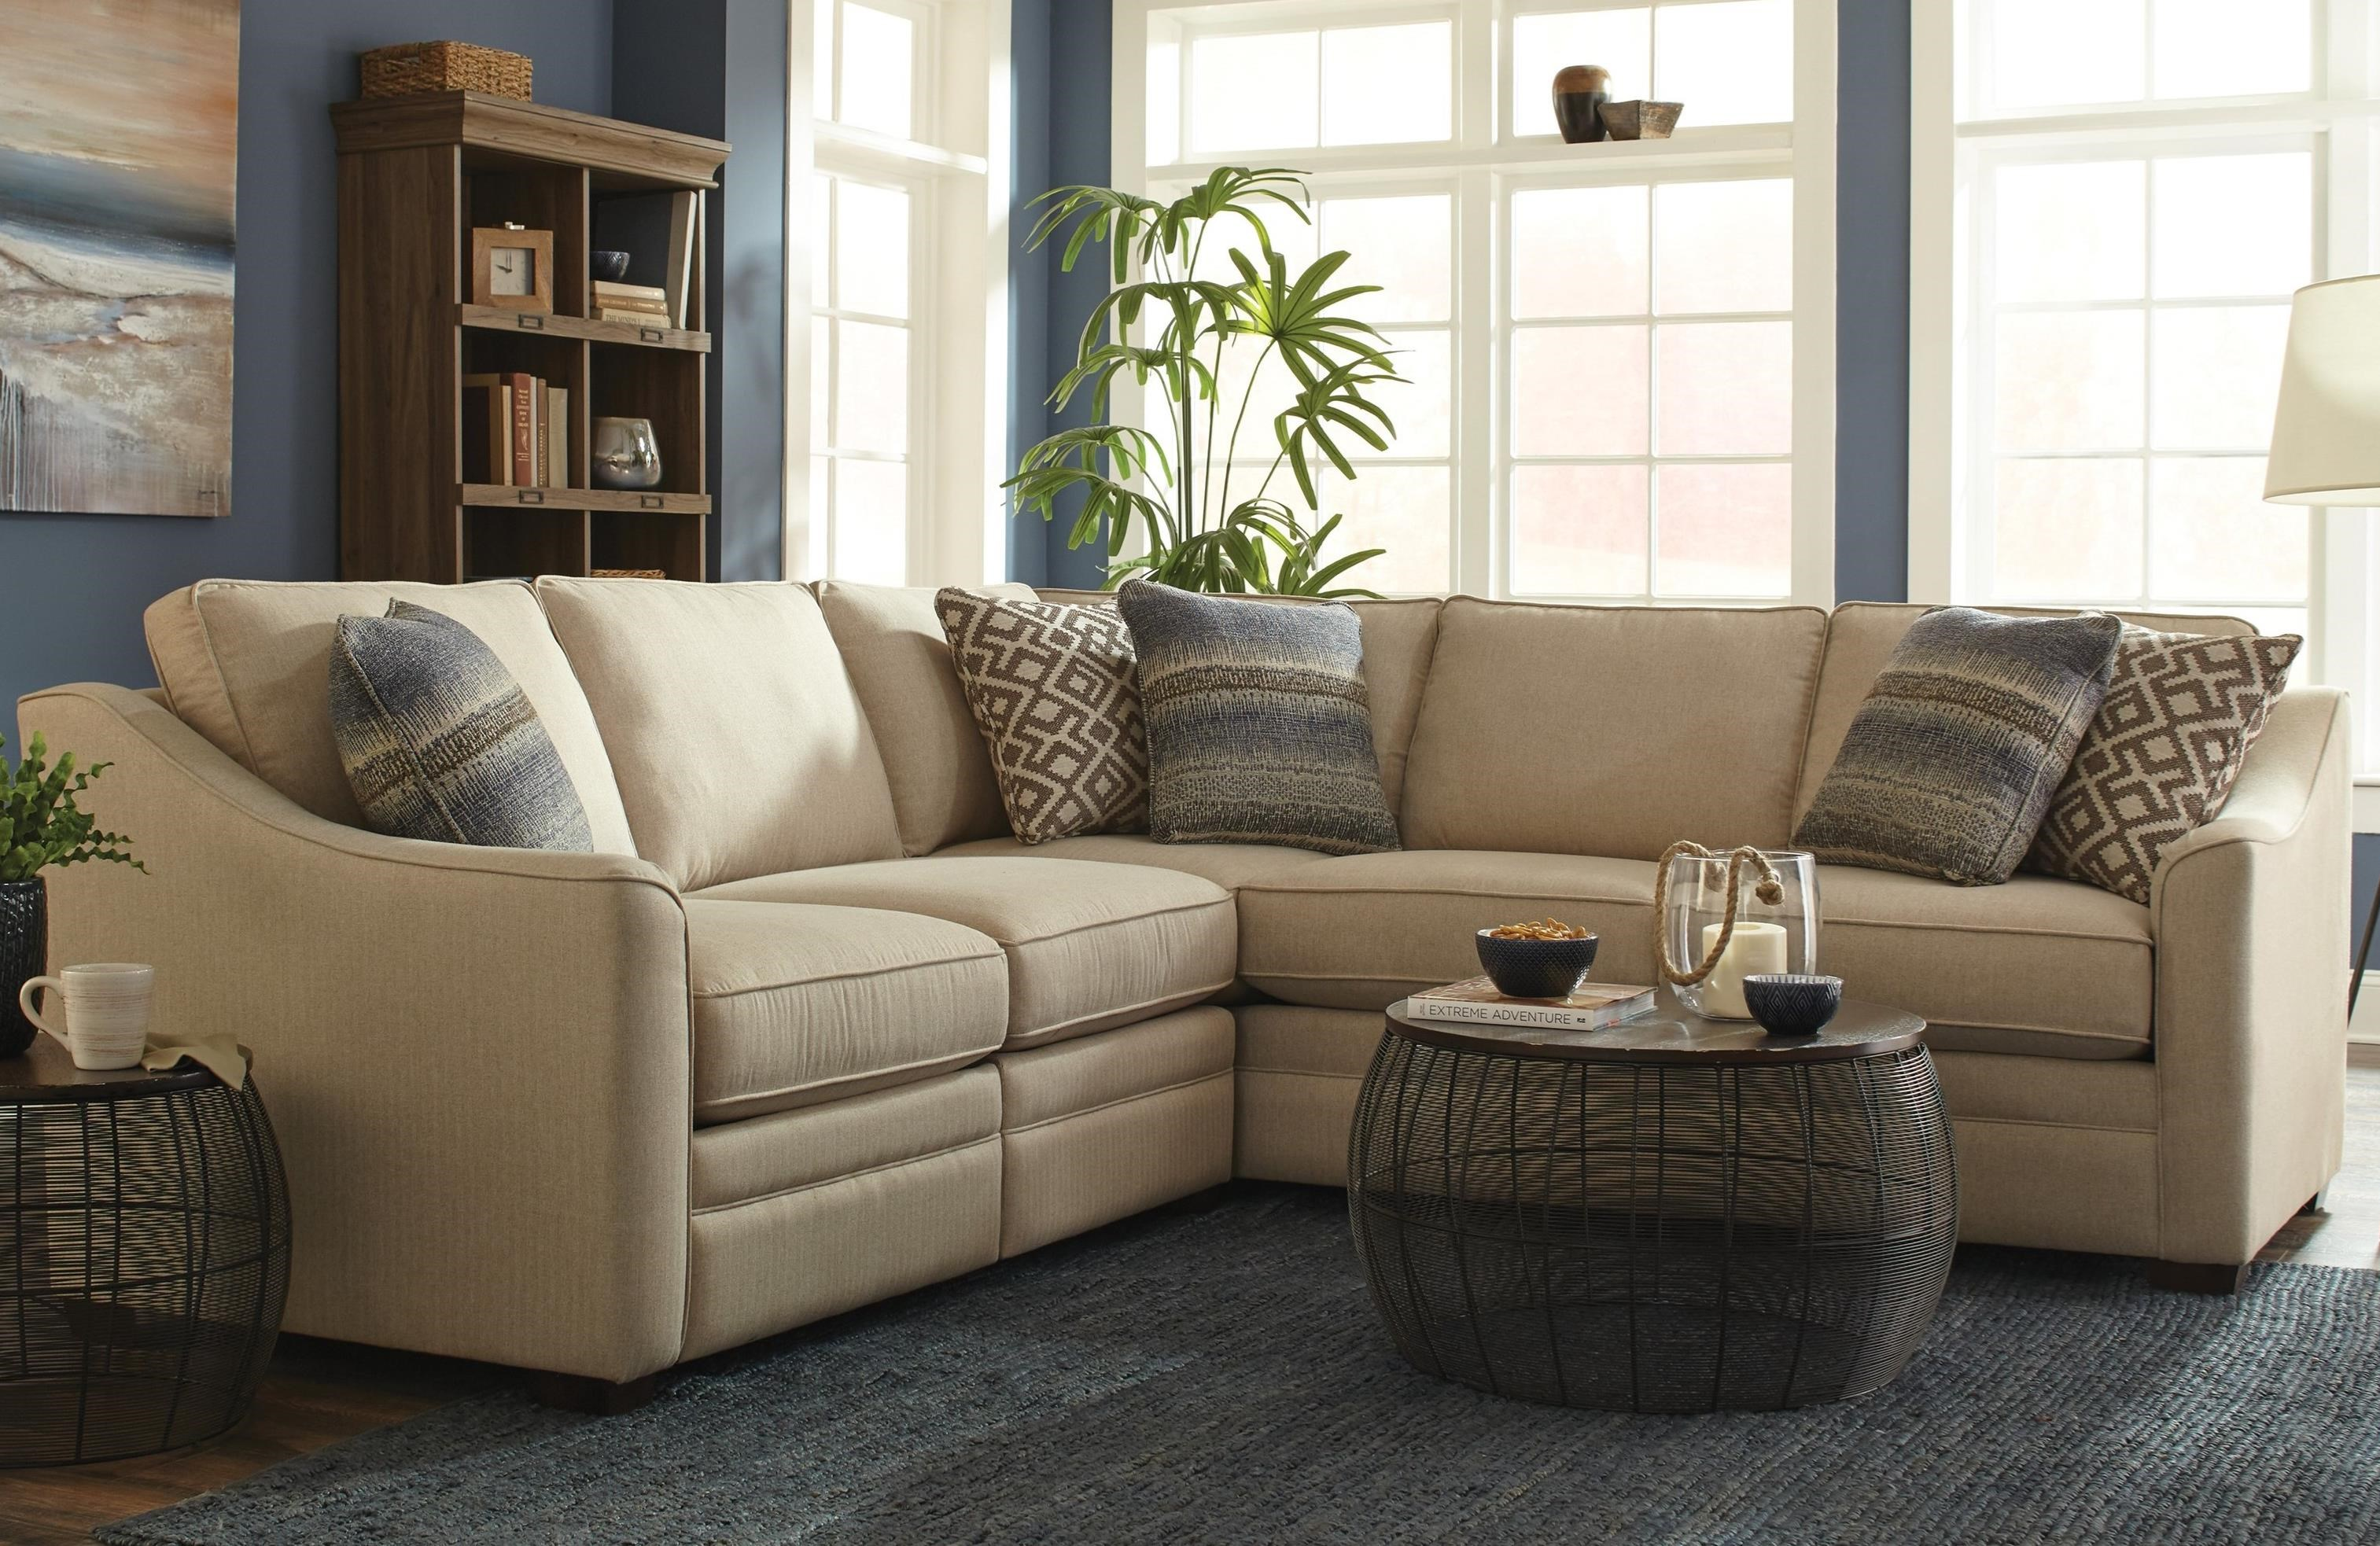 F9 Custom Collection Custom 2 Pc Sectional w/ Recliners by Craftmaster at Powell's Furniture and Mattress